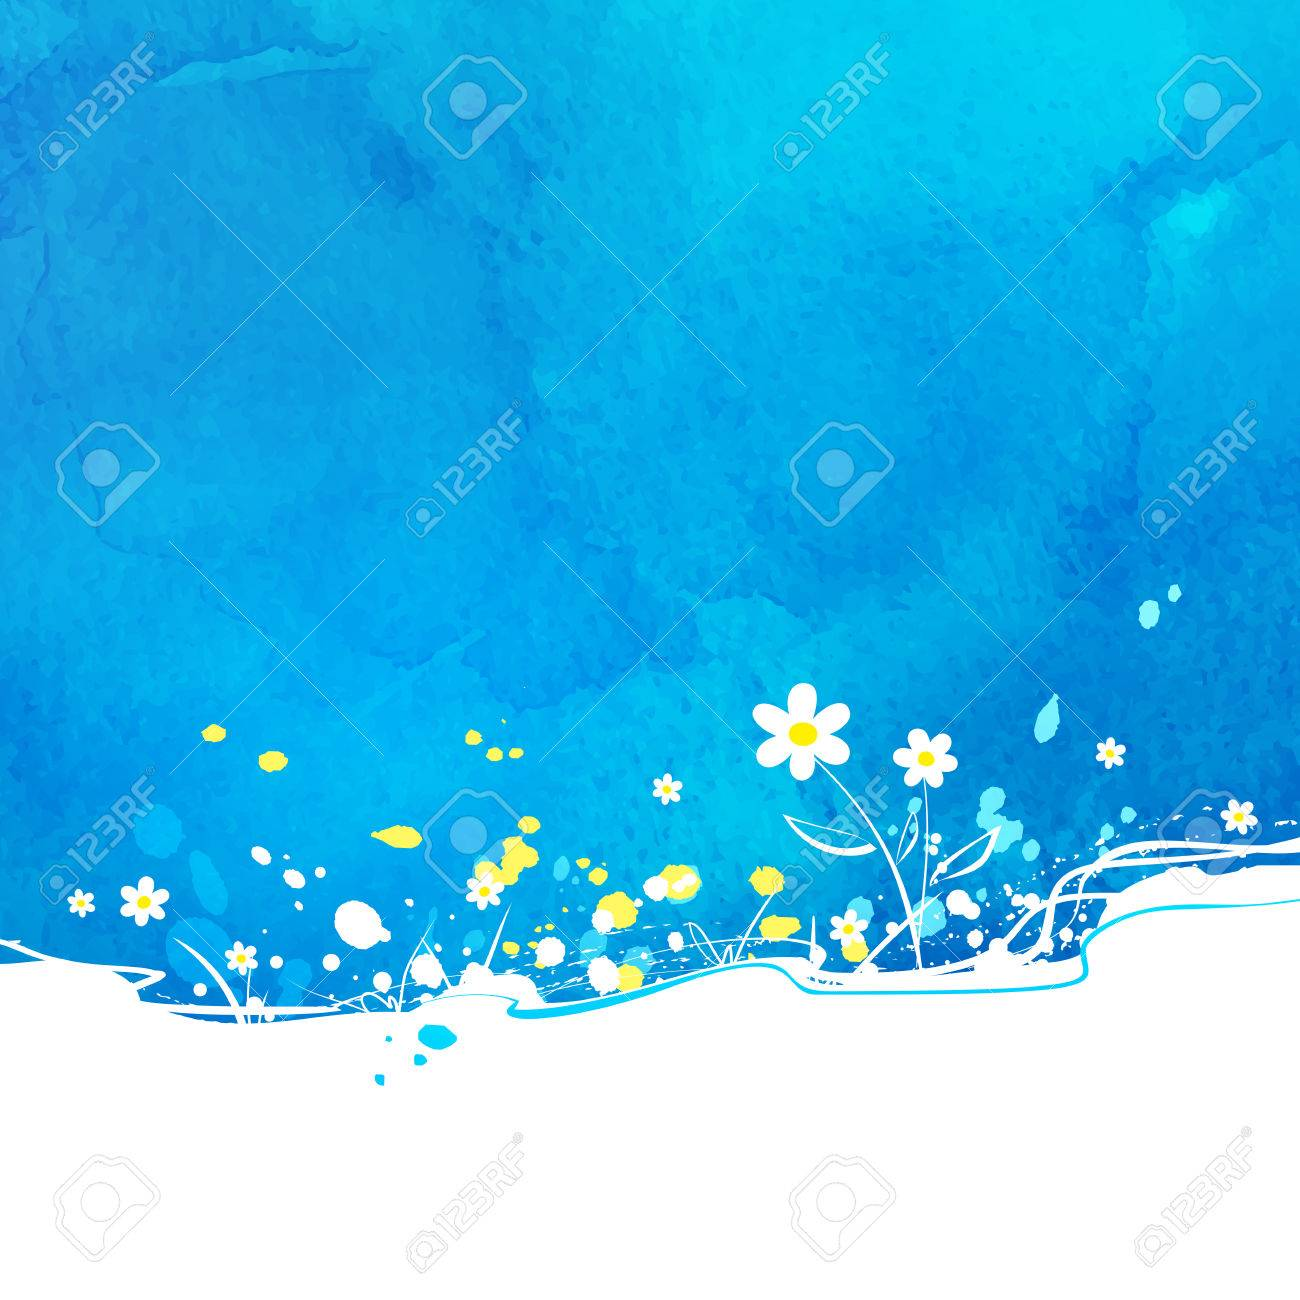 Blue vector background with flowers and watercolor texture. - 43123794